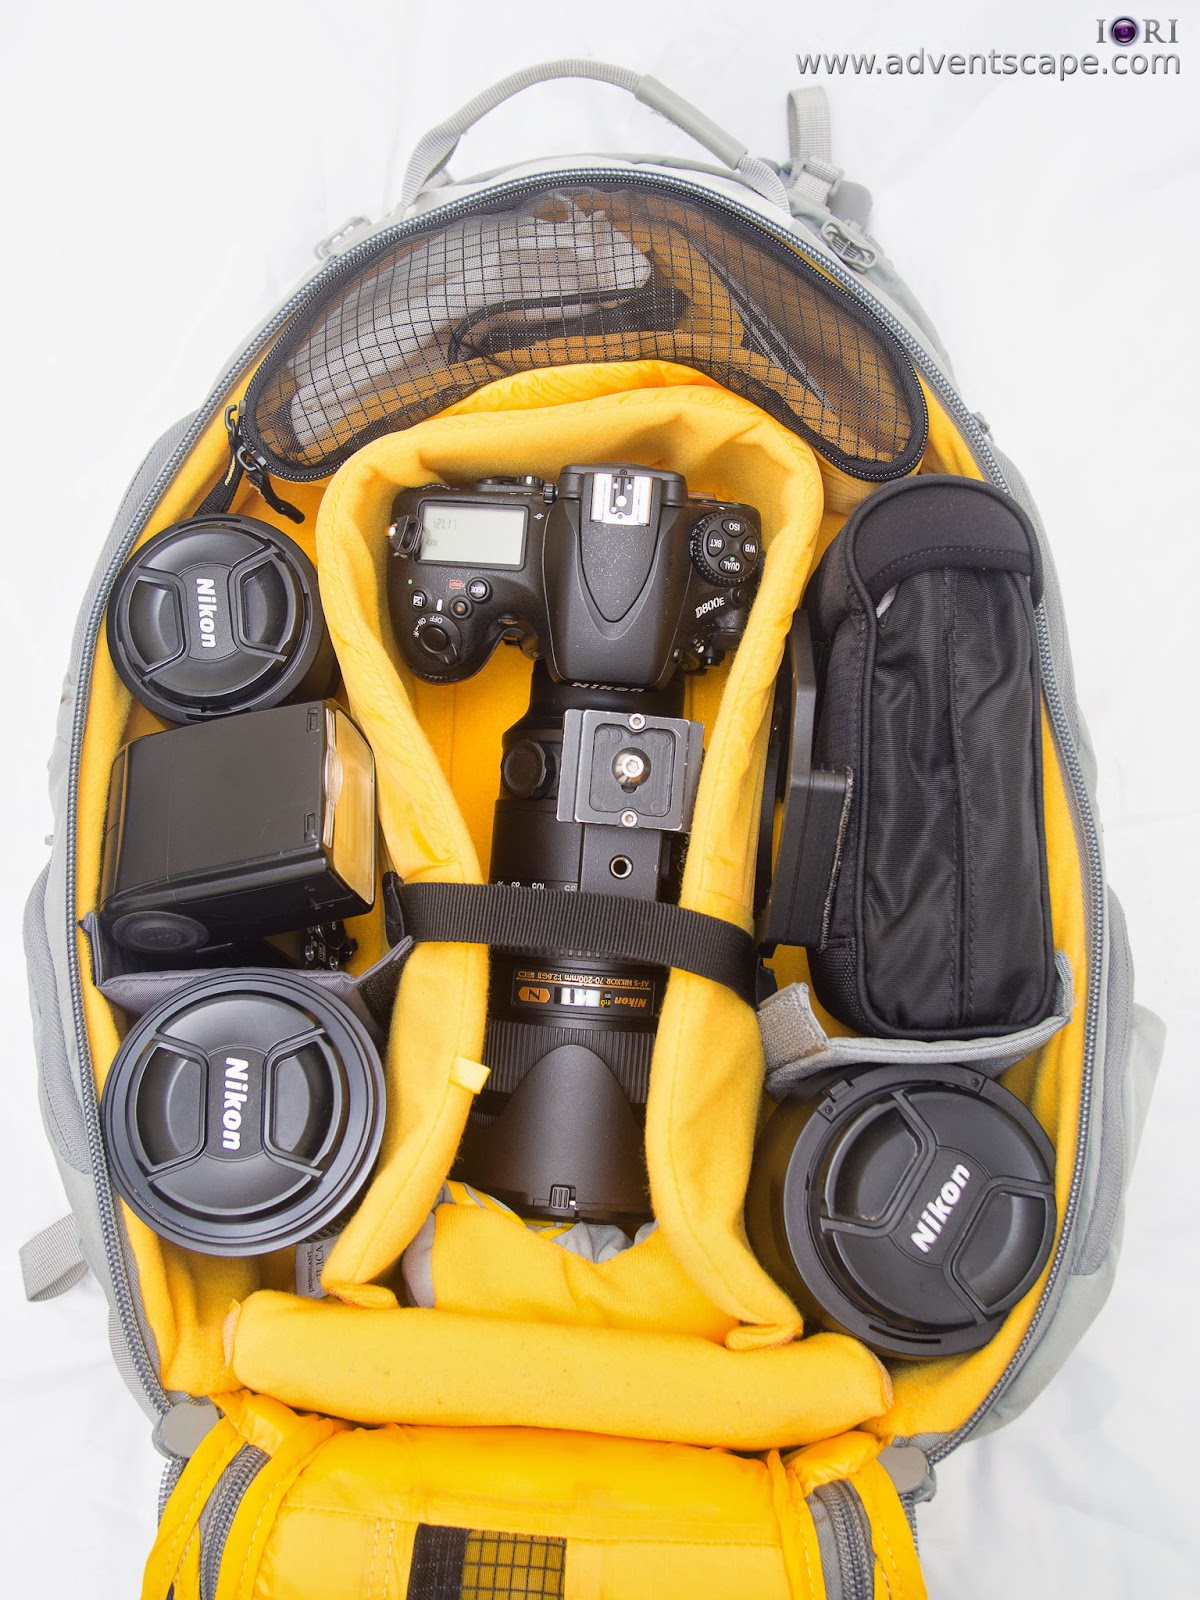 205, adventscape, Australian Landscape Photographer, bag, Bug, Kata, Manfrotto, Philip Avellana, review, accessories, pouch, strap, What's In Your Bag, General